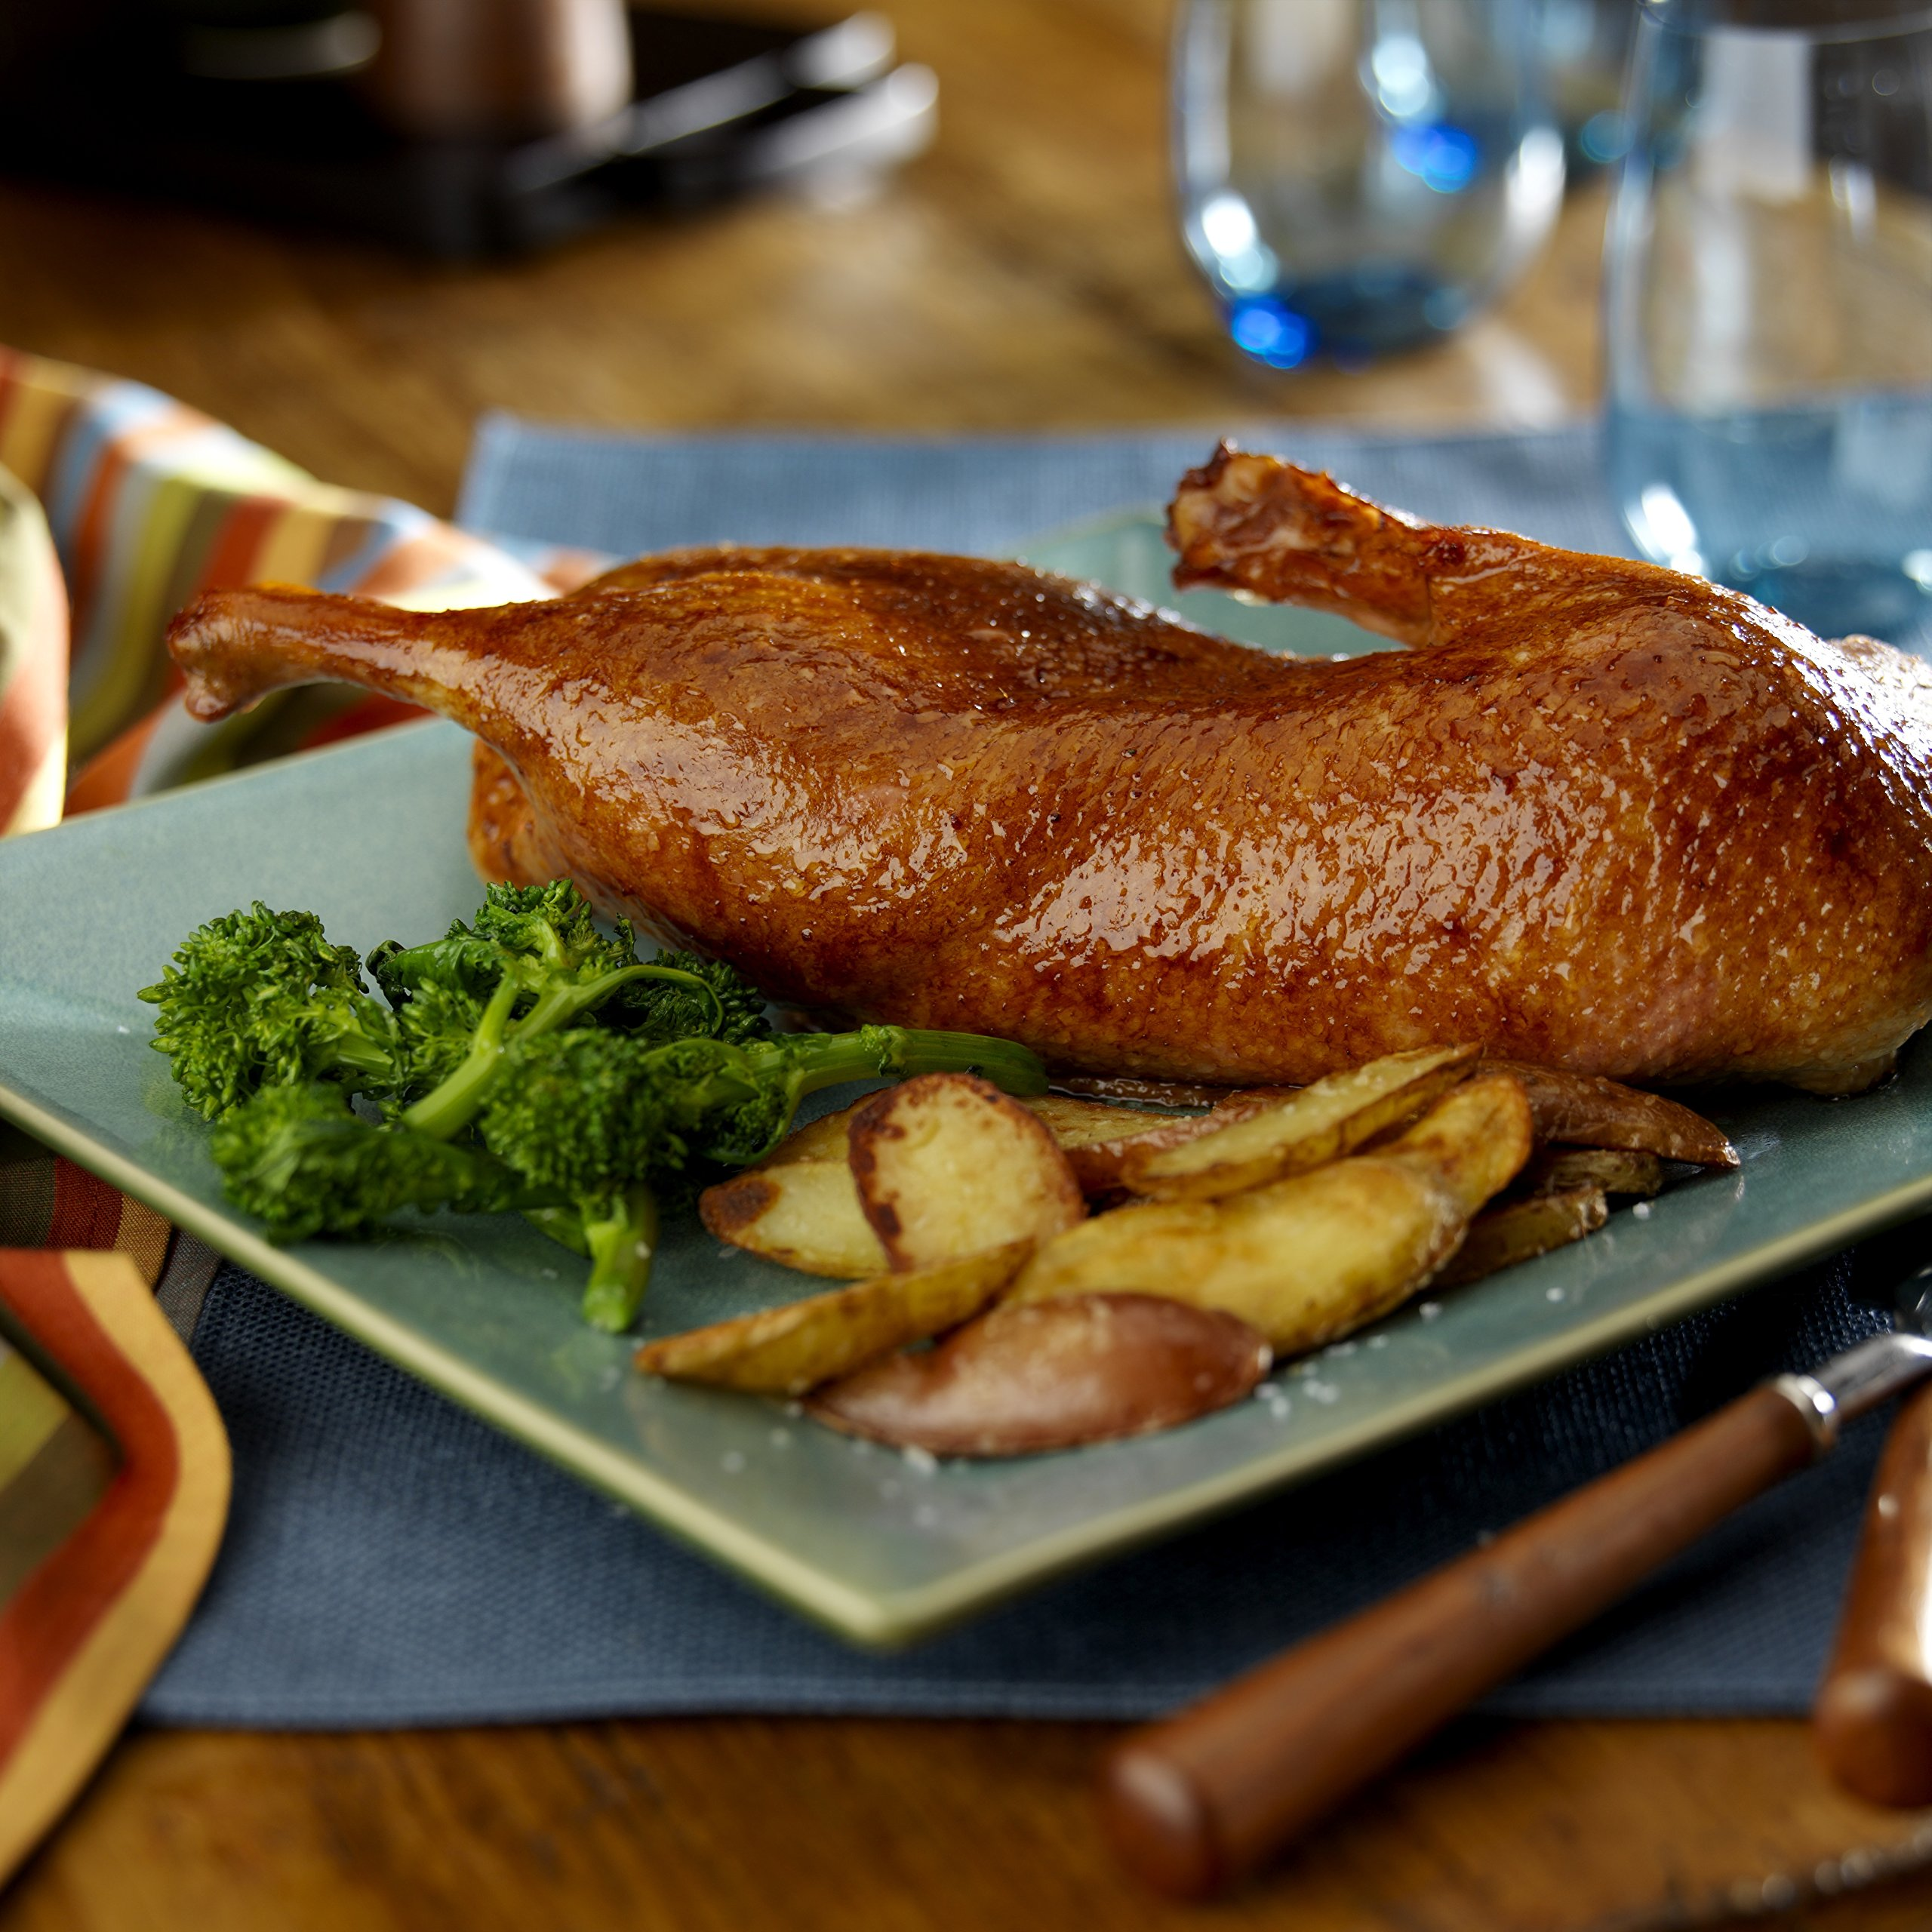 Maple Leaf Farms Roast Half Duck, Partially Deboned, Fully Cooked, 12 oz., (12 per case)